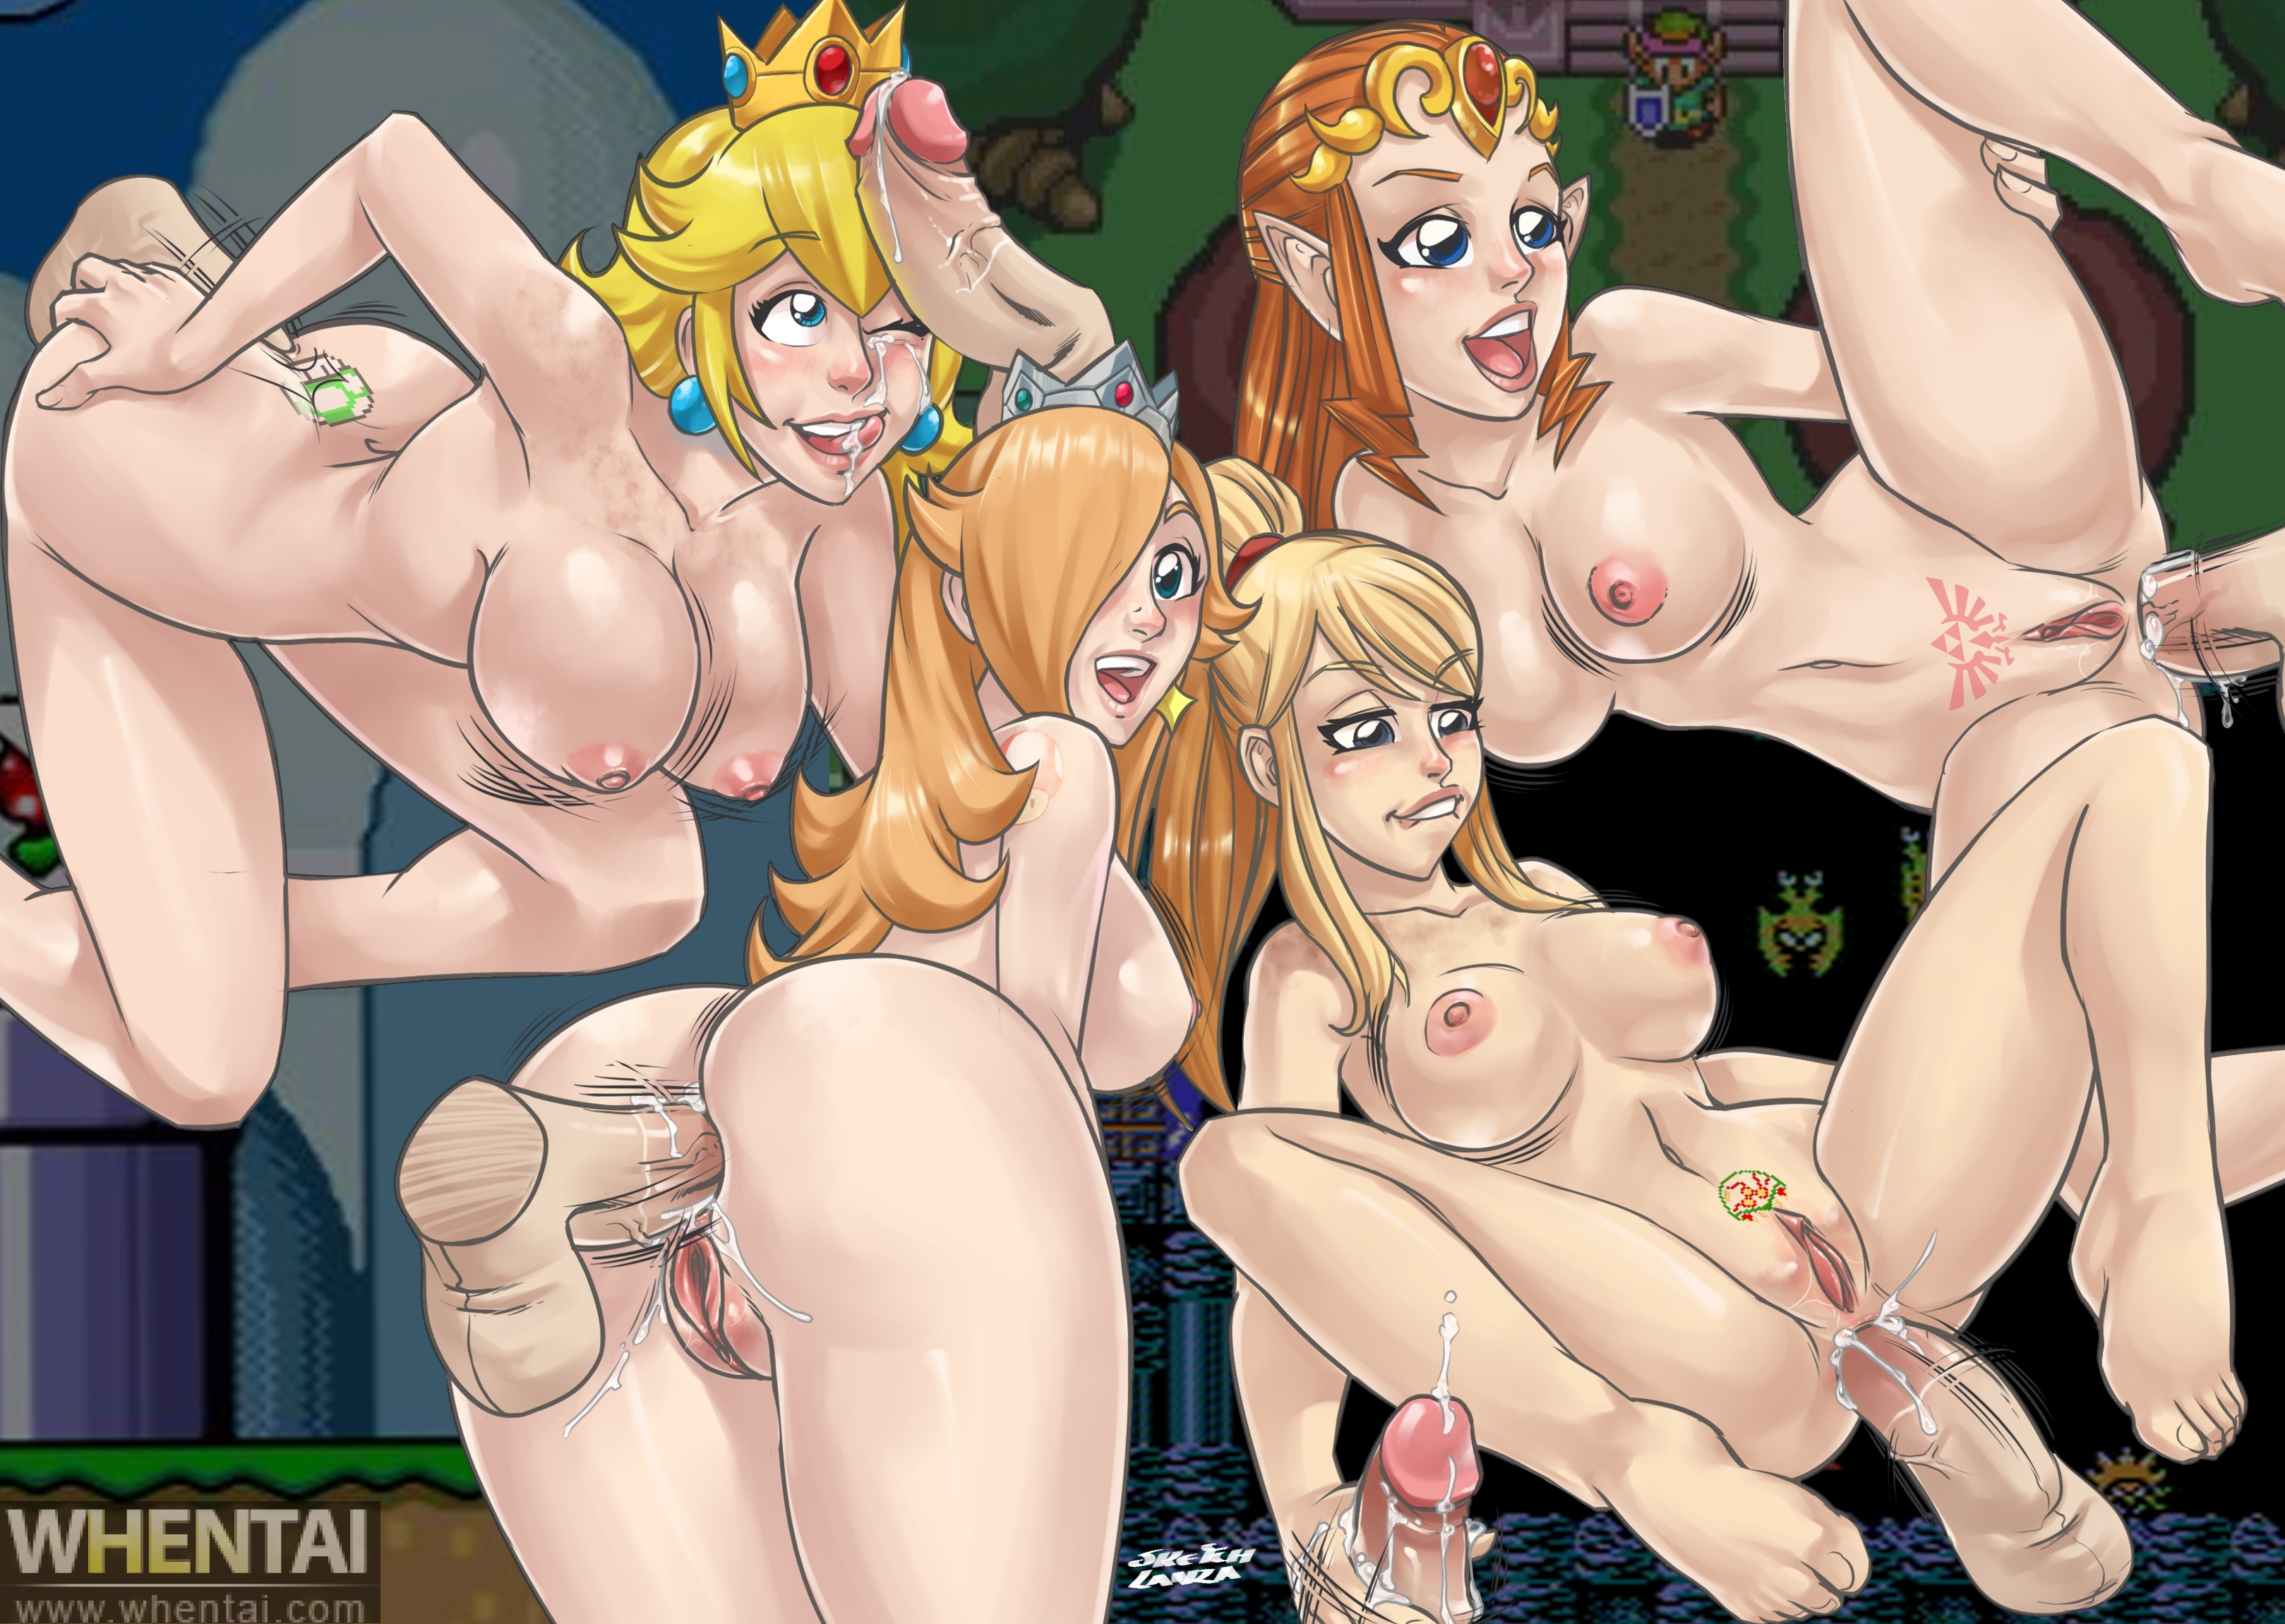 Blonde zelda and samus naked excellent phrase